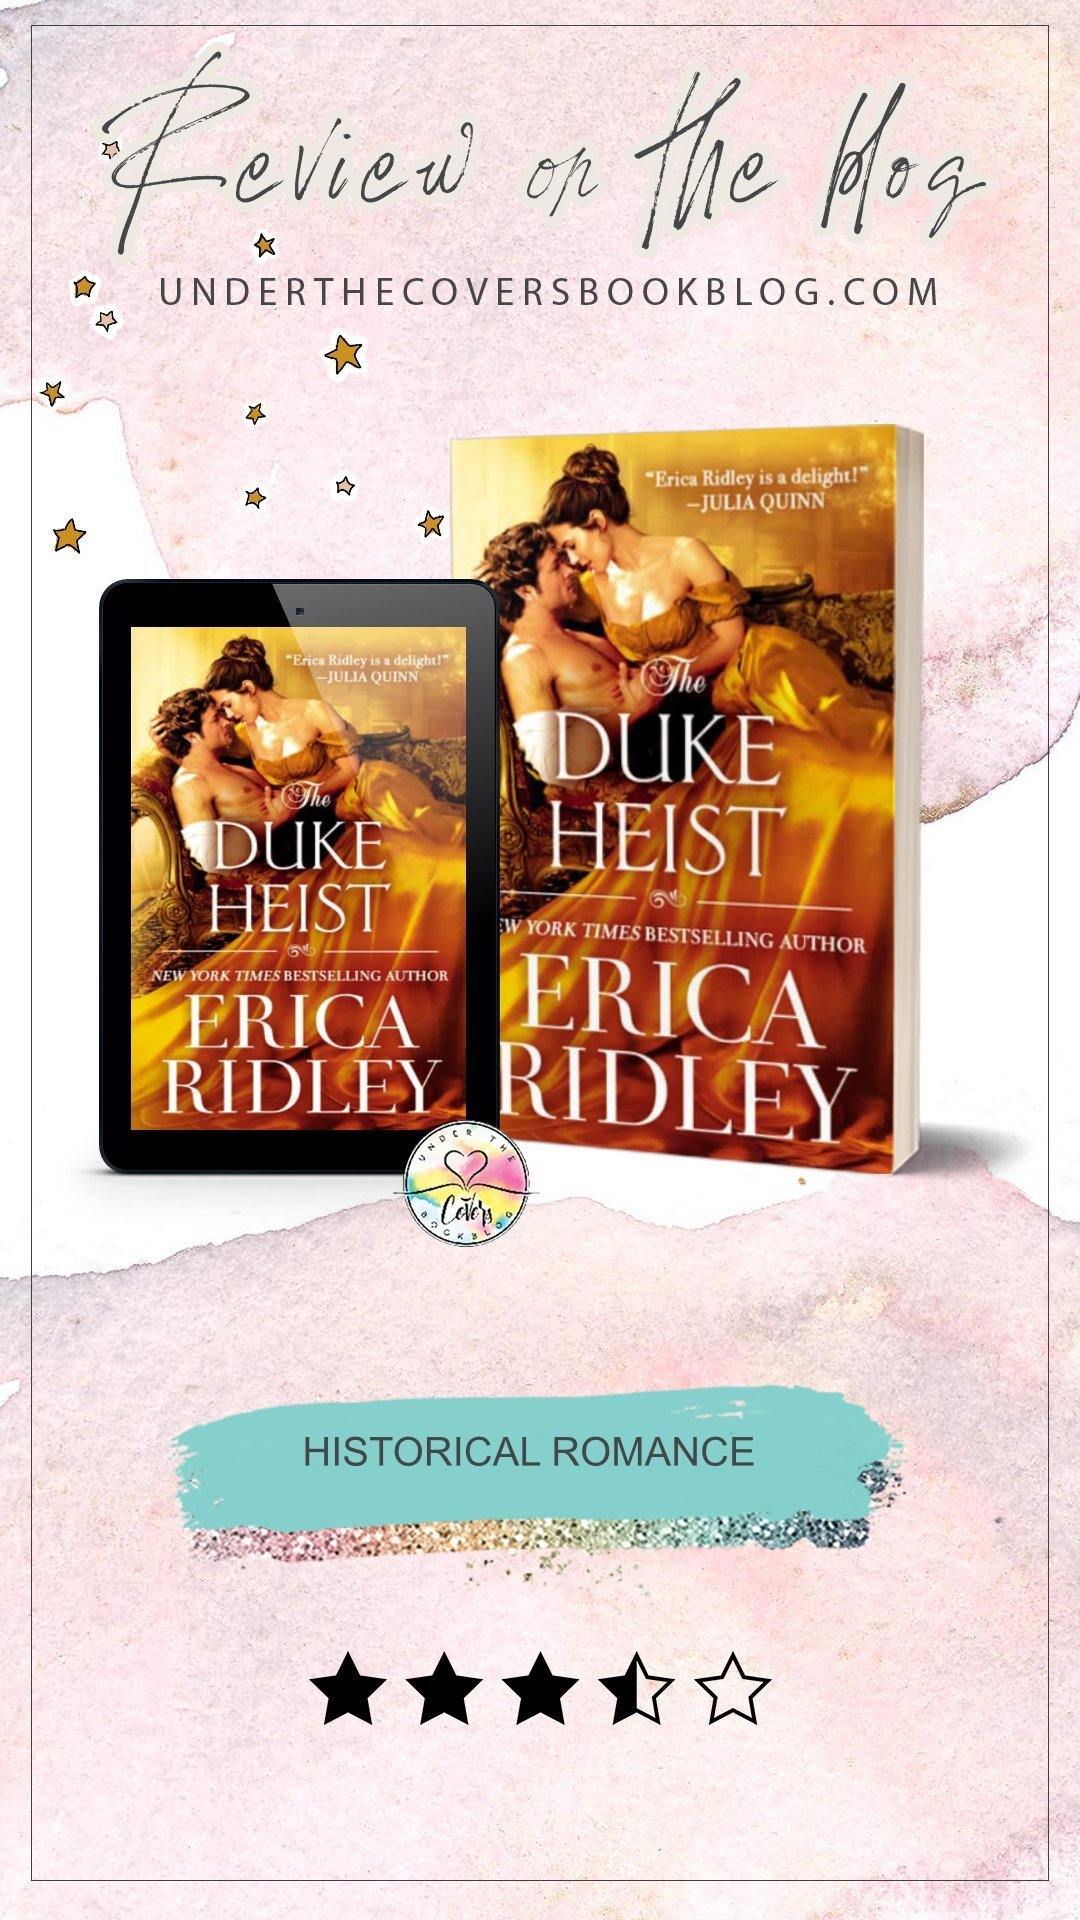 ARC Review: The Duke Heist by Erica Ridley